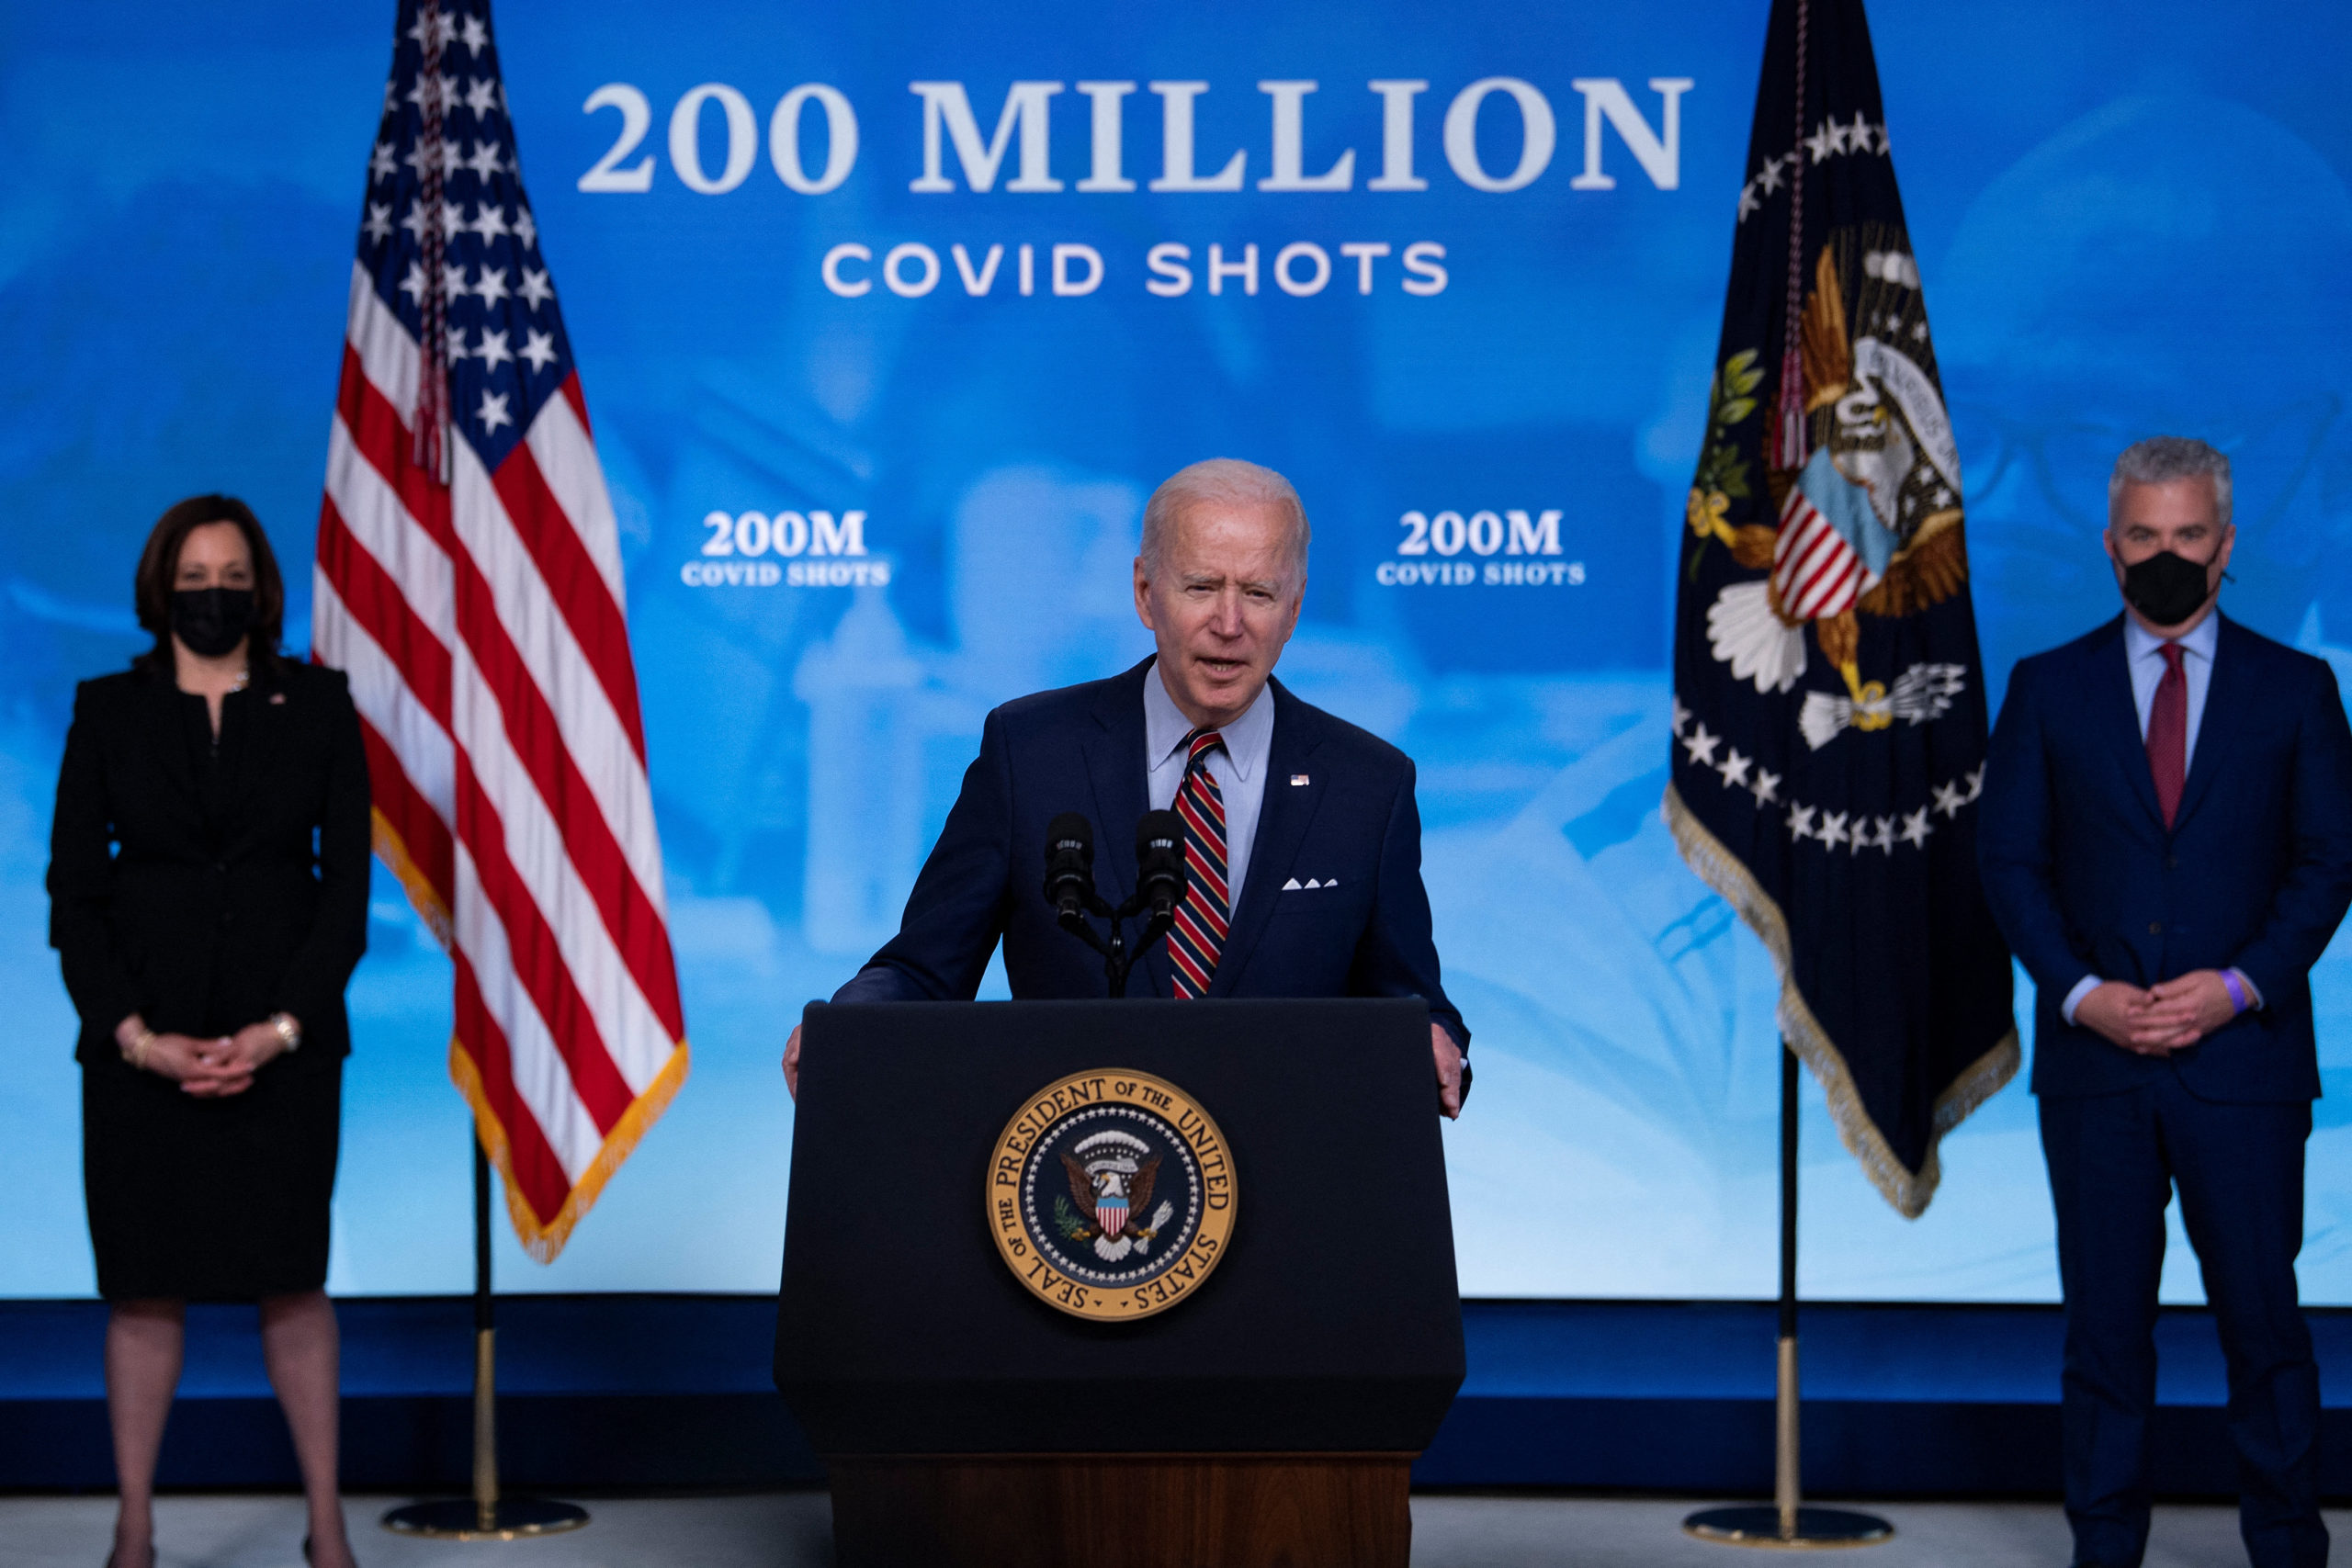 President Joe Biden speaks about the ongoing U.S. coronavirus response and the state of vaccinations on Wednesday. (Brendan Smialowski/AFP via Getty Images)